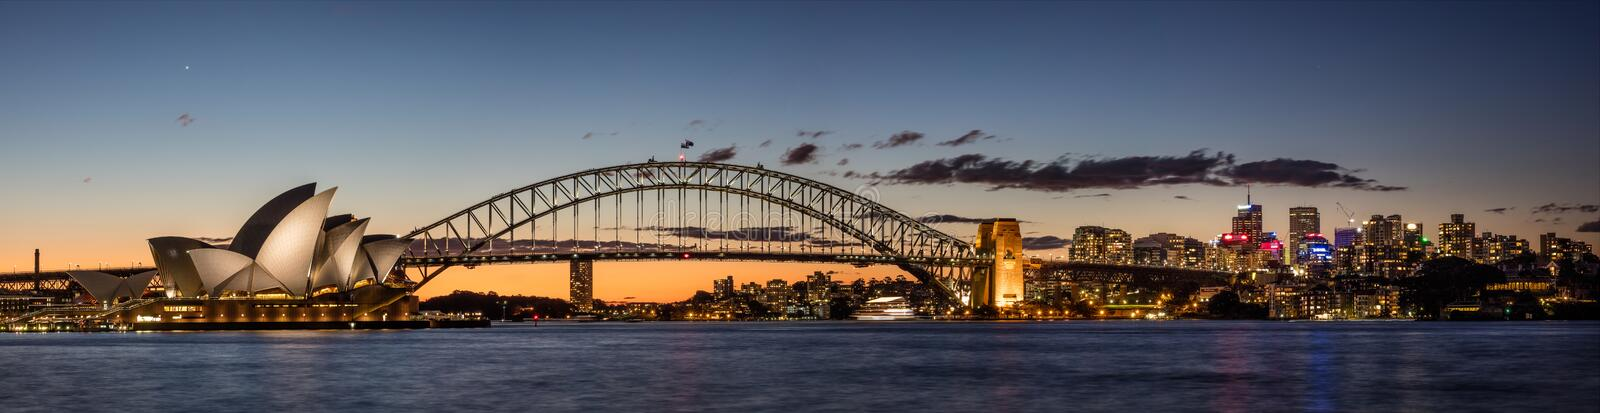 Port de Sydney au crépuscule, Sydney NSW, Australie photo stock